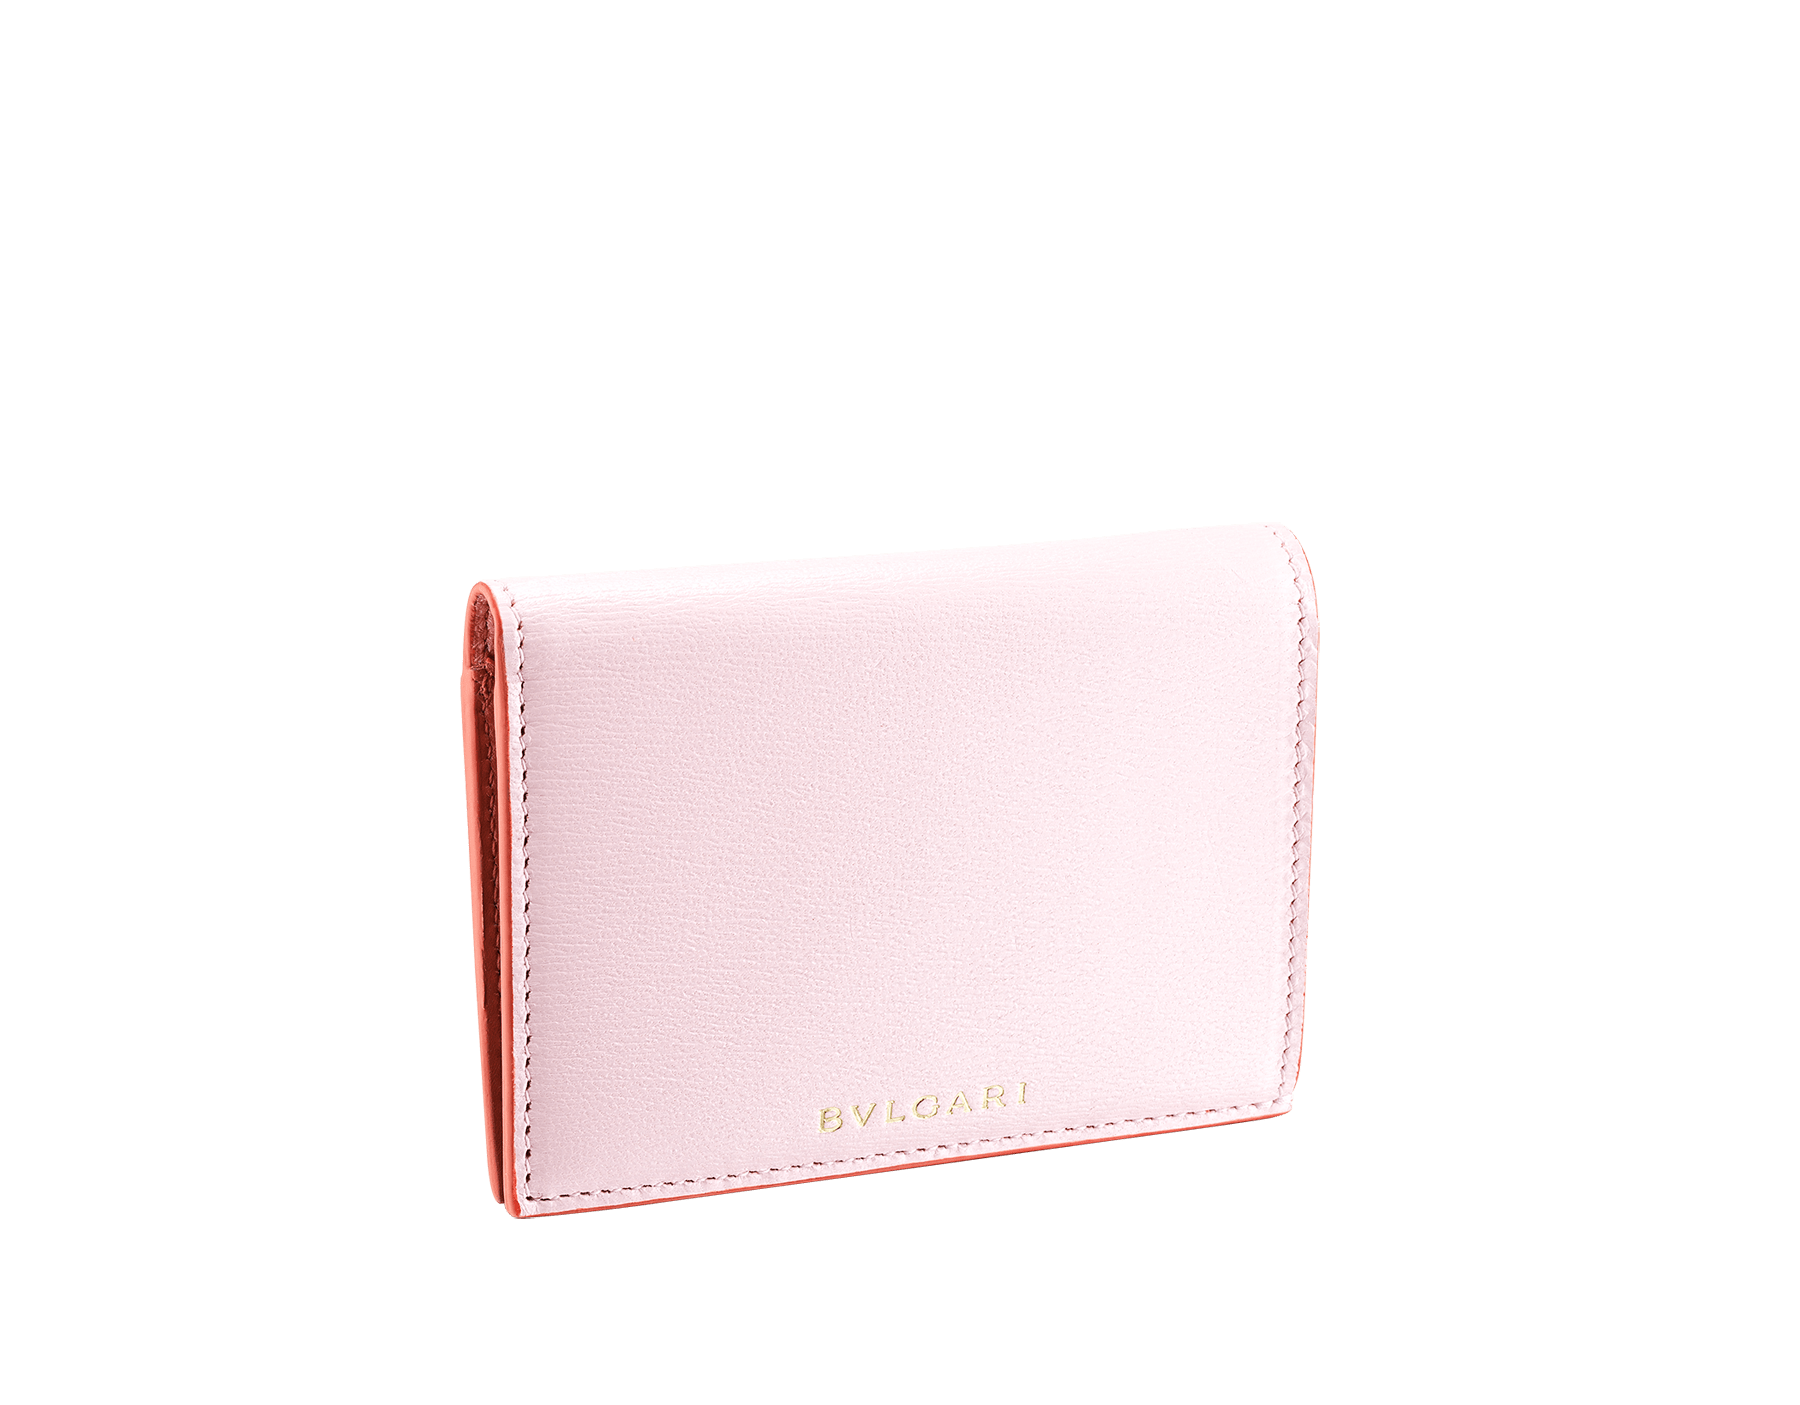 B.zero1 double folded credit card holder in rosa di francia and imperial topaz goatskin. Iconic B.zero1 charm in light gold plated brass. 289086 image 1